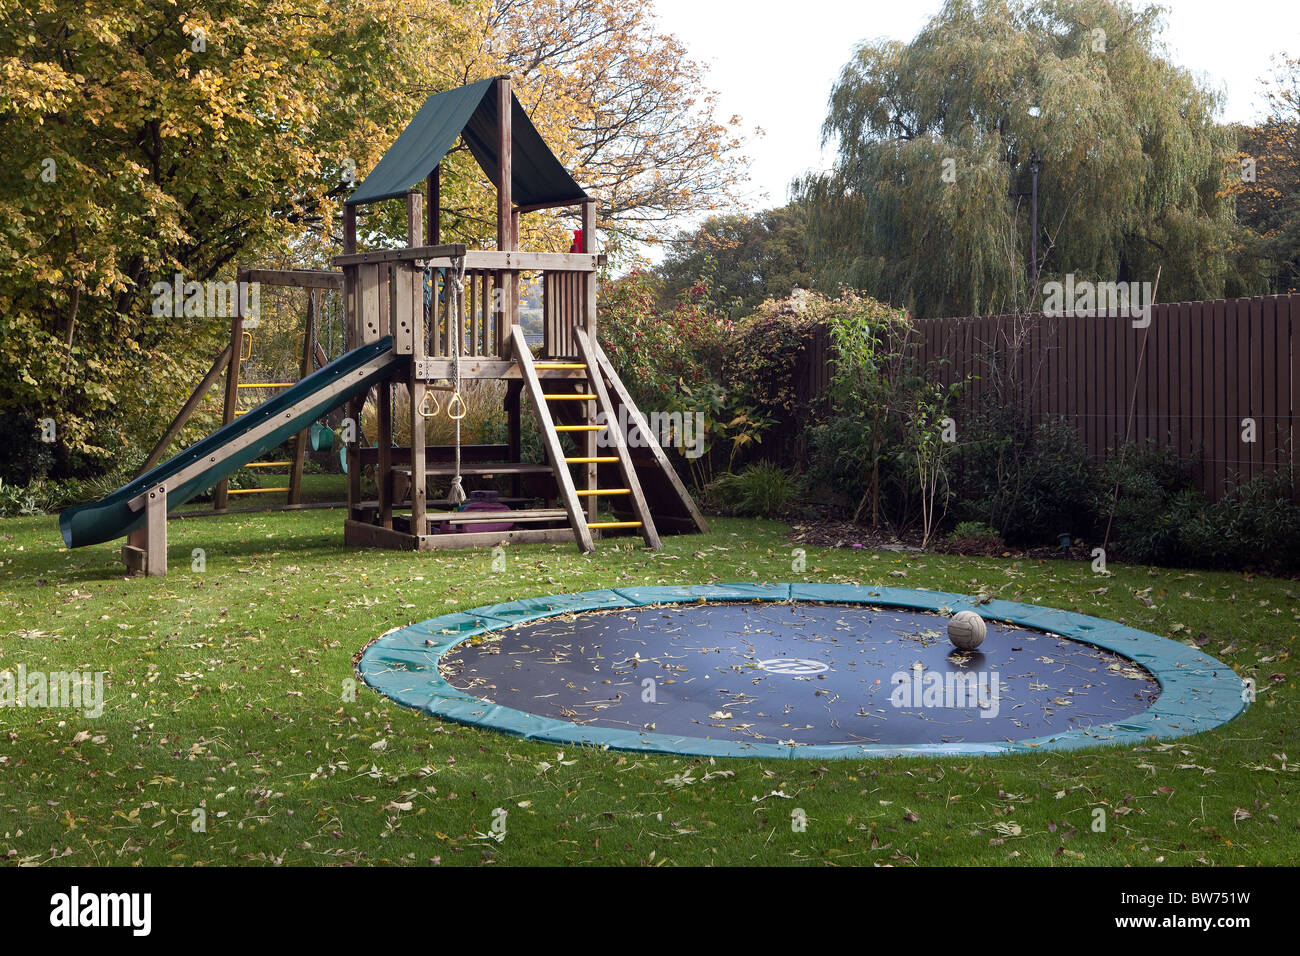 Exceptional Climbing Frame, Slide And Trampoline In Garden.